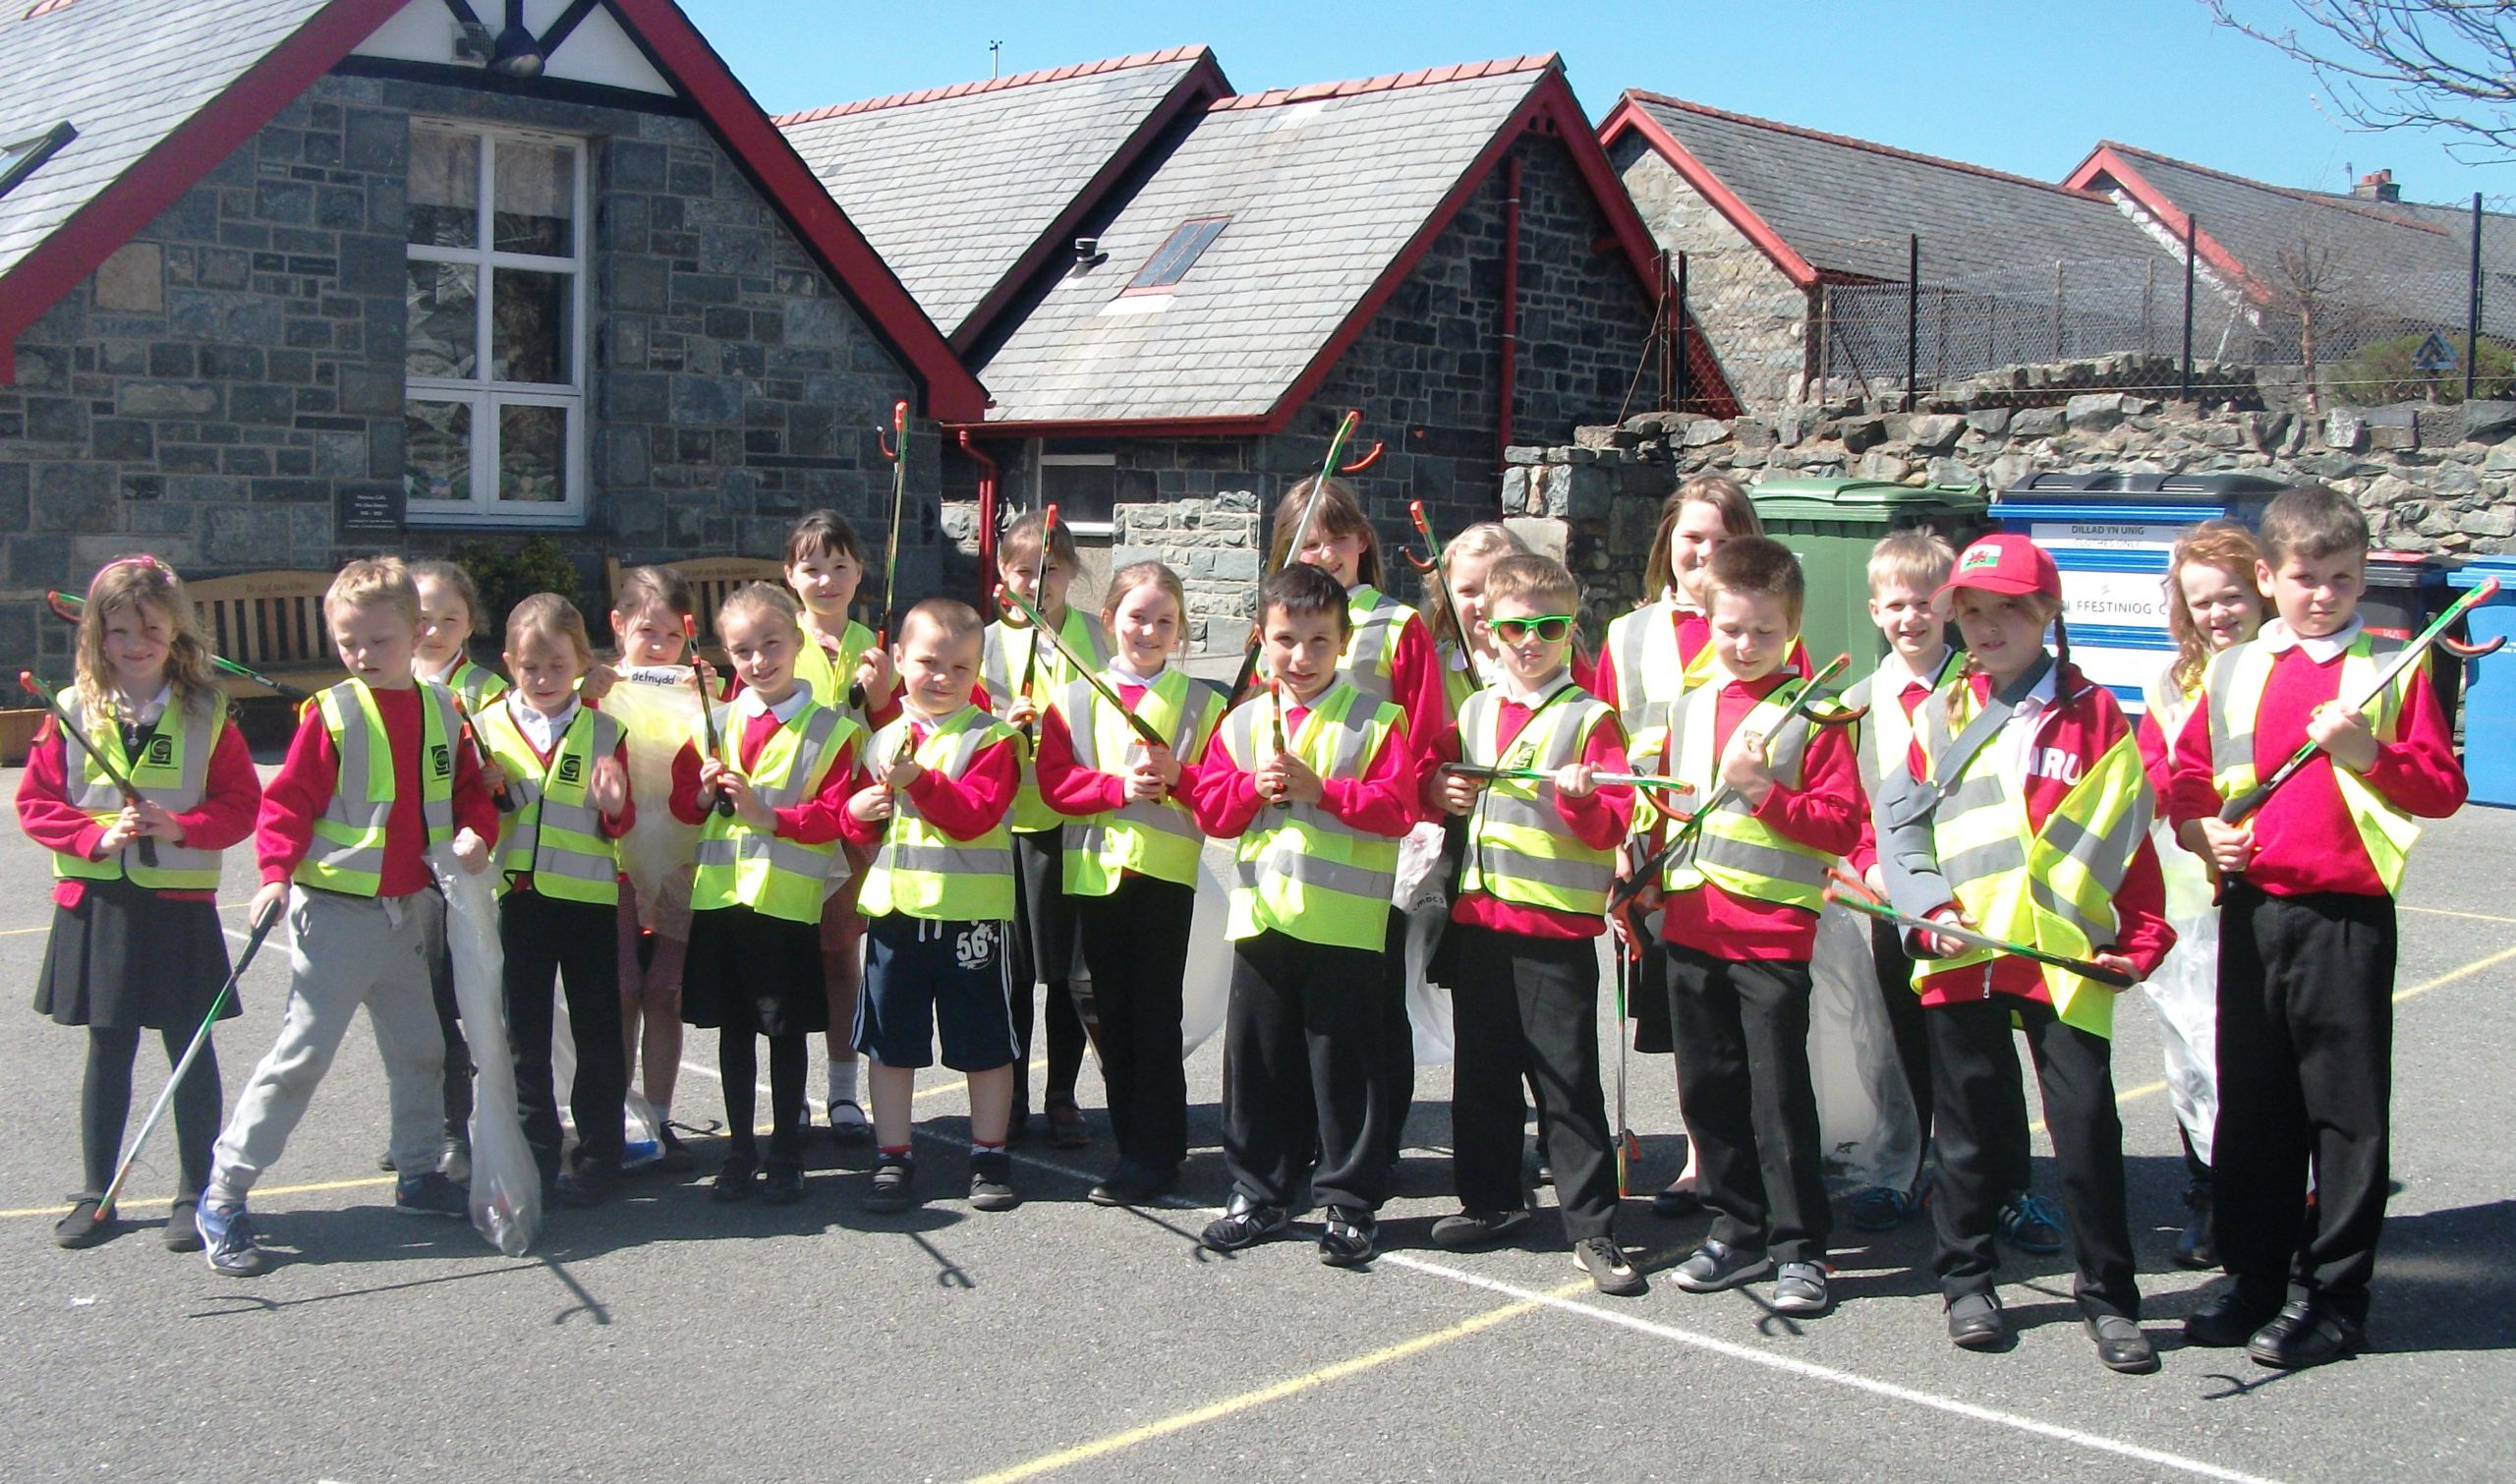 Ysgol Bro Hedd Wyn, Trawsfynydd pupils who took part in the recent litter-pick in the area.